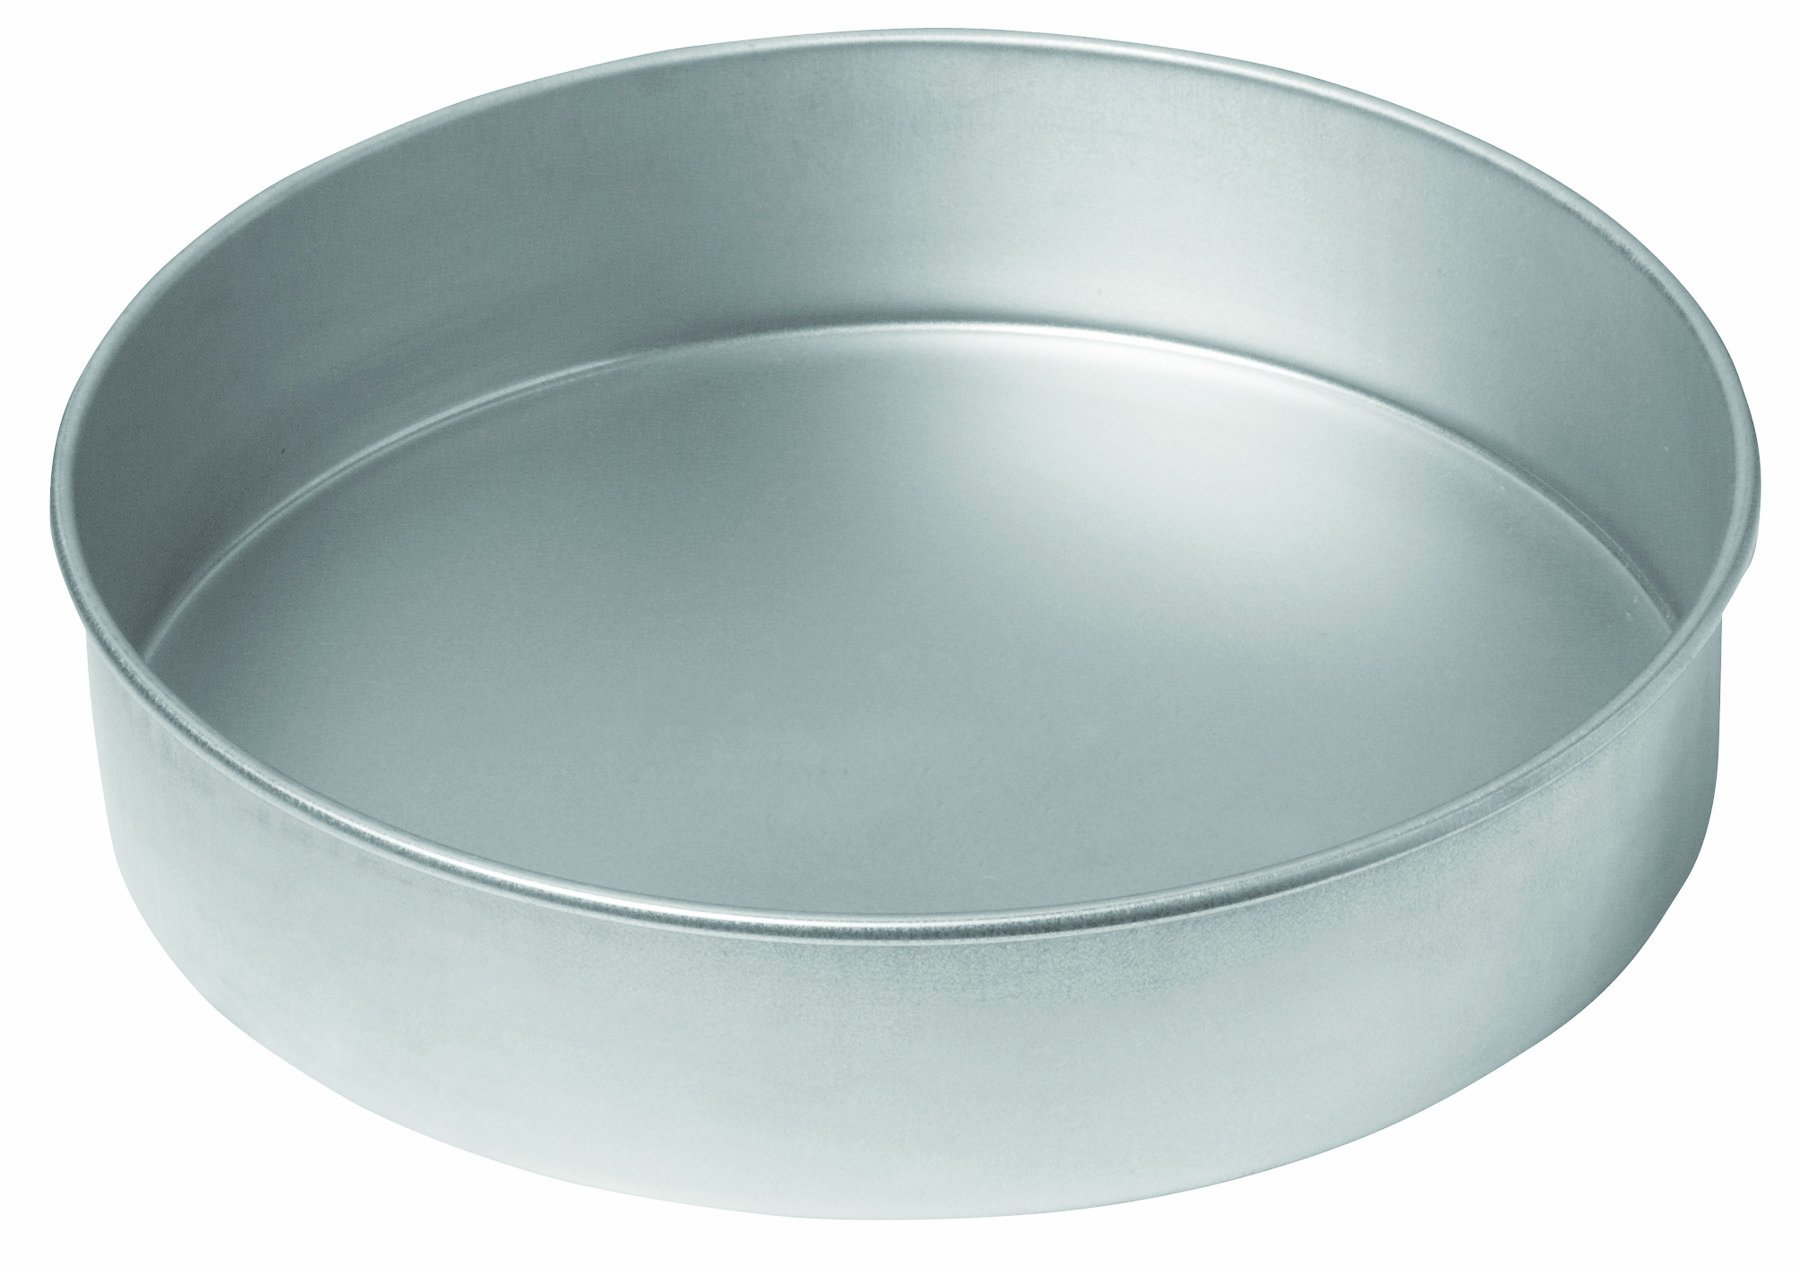 Chicago Metallic Commercial II Traditional Uncoated 9-Inch Round Cake Pan